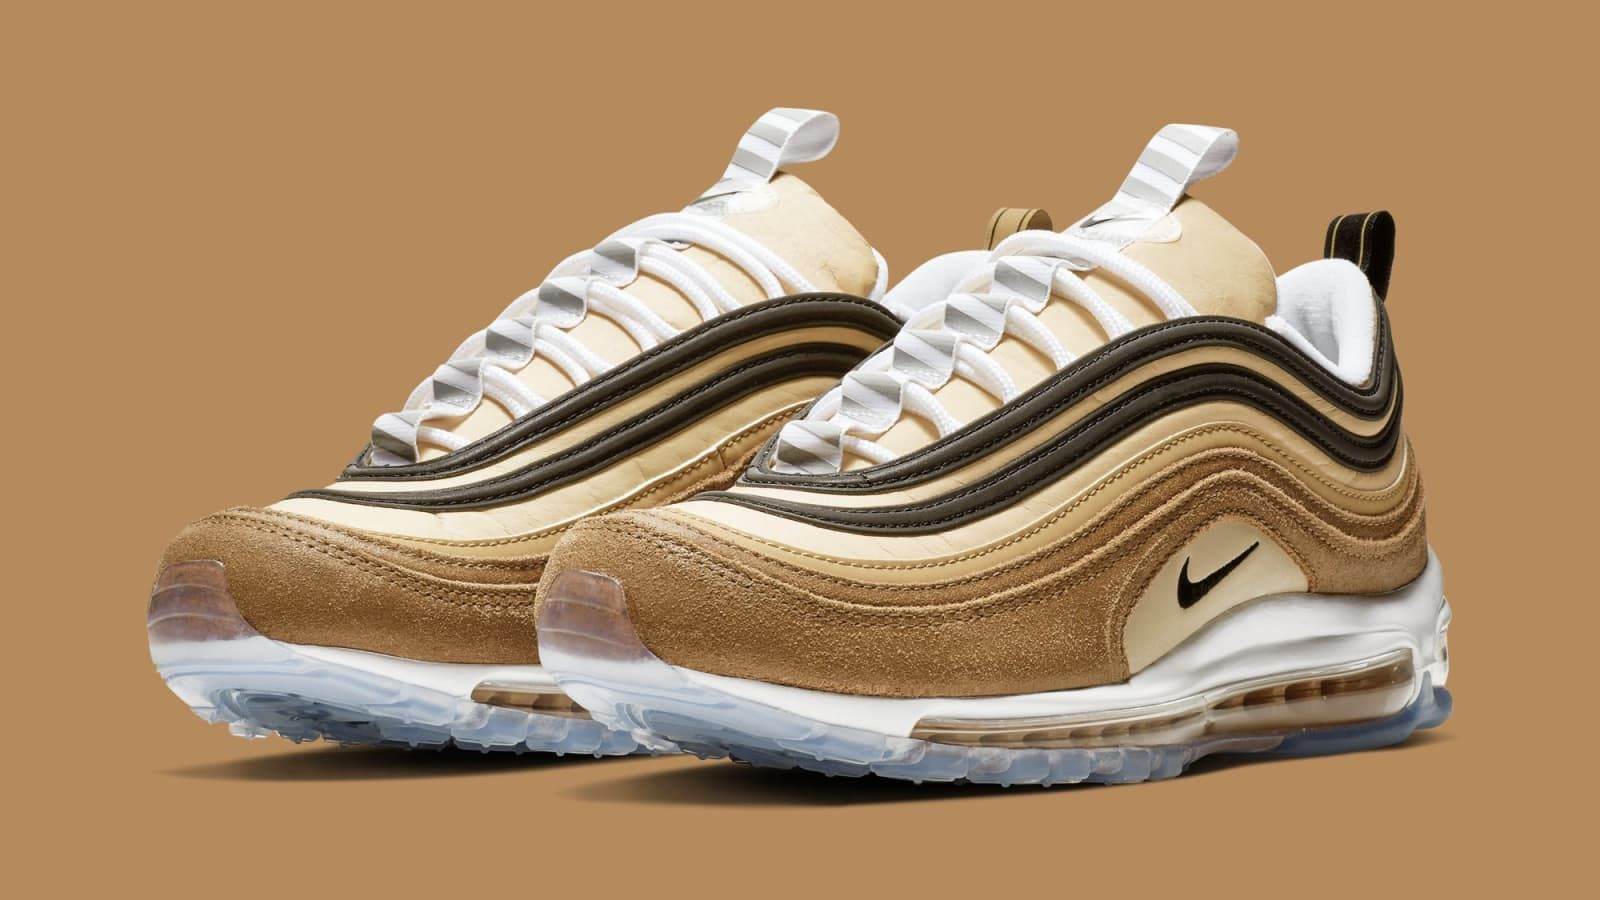 sneakers for cheap 11f5d ba9aa Nike Air Max 97  Ale Brown Black-Elemental Gold  921826-201 Release Date    Sole Collector